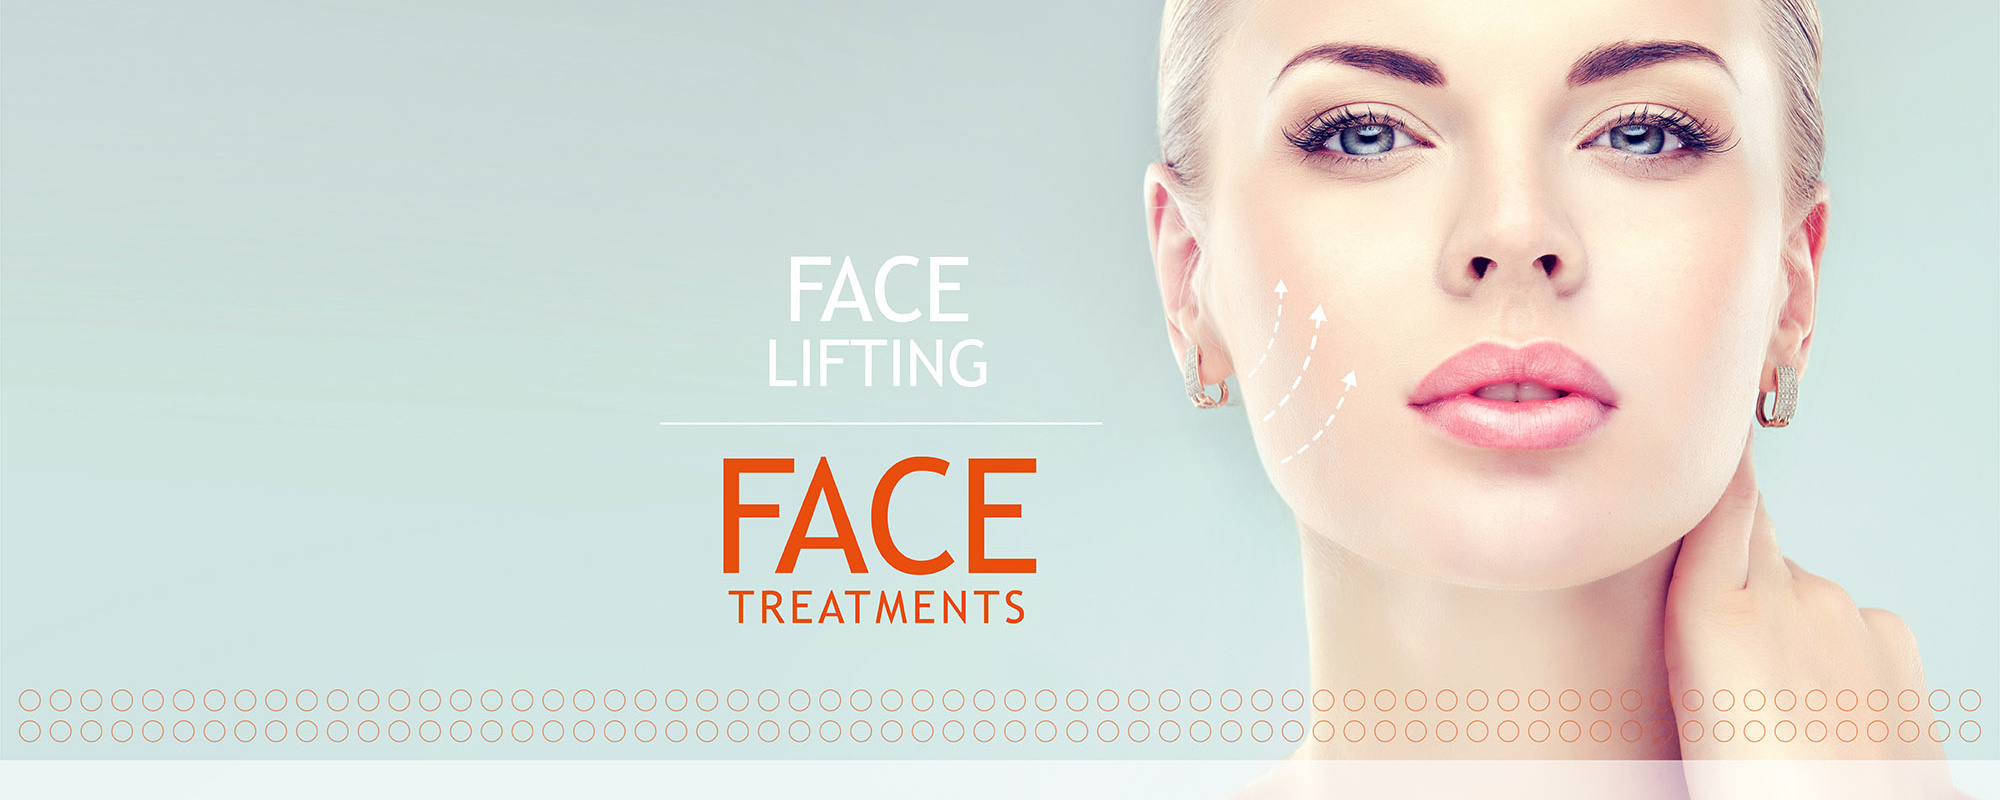 Scinn - Face Lifting